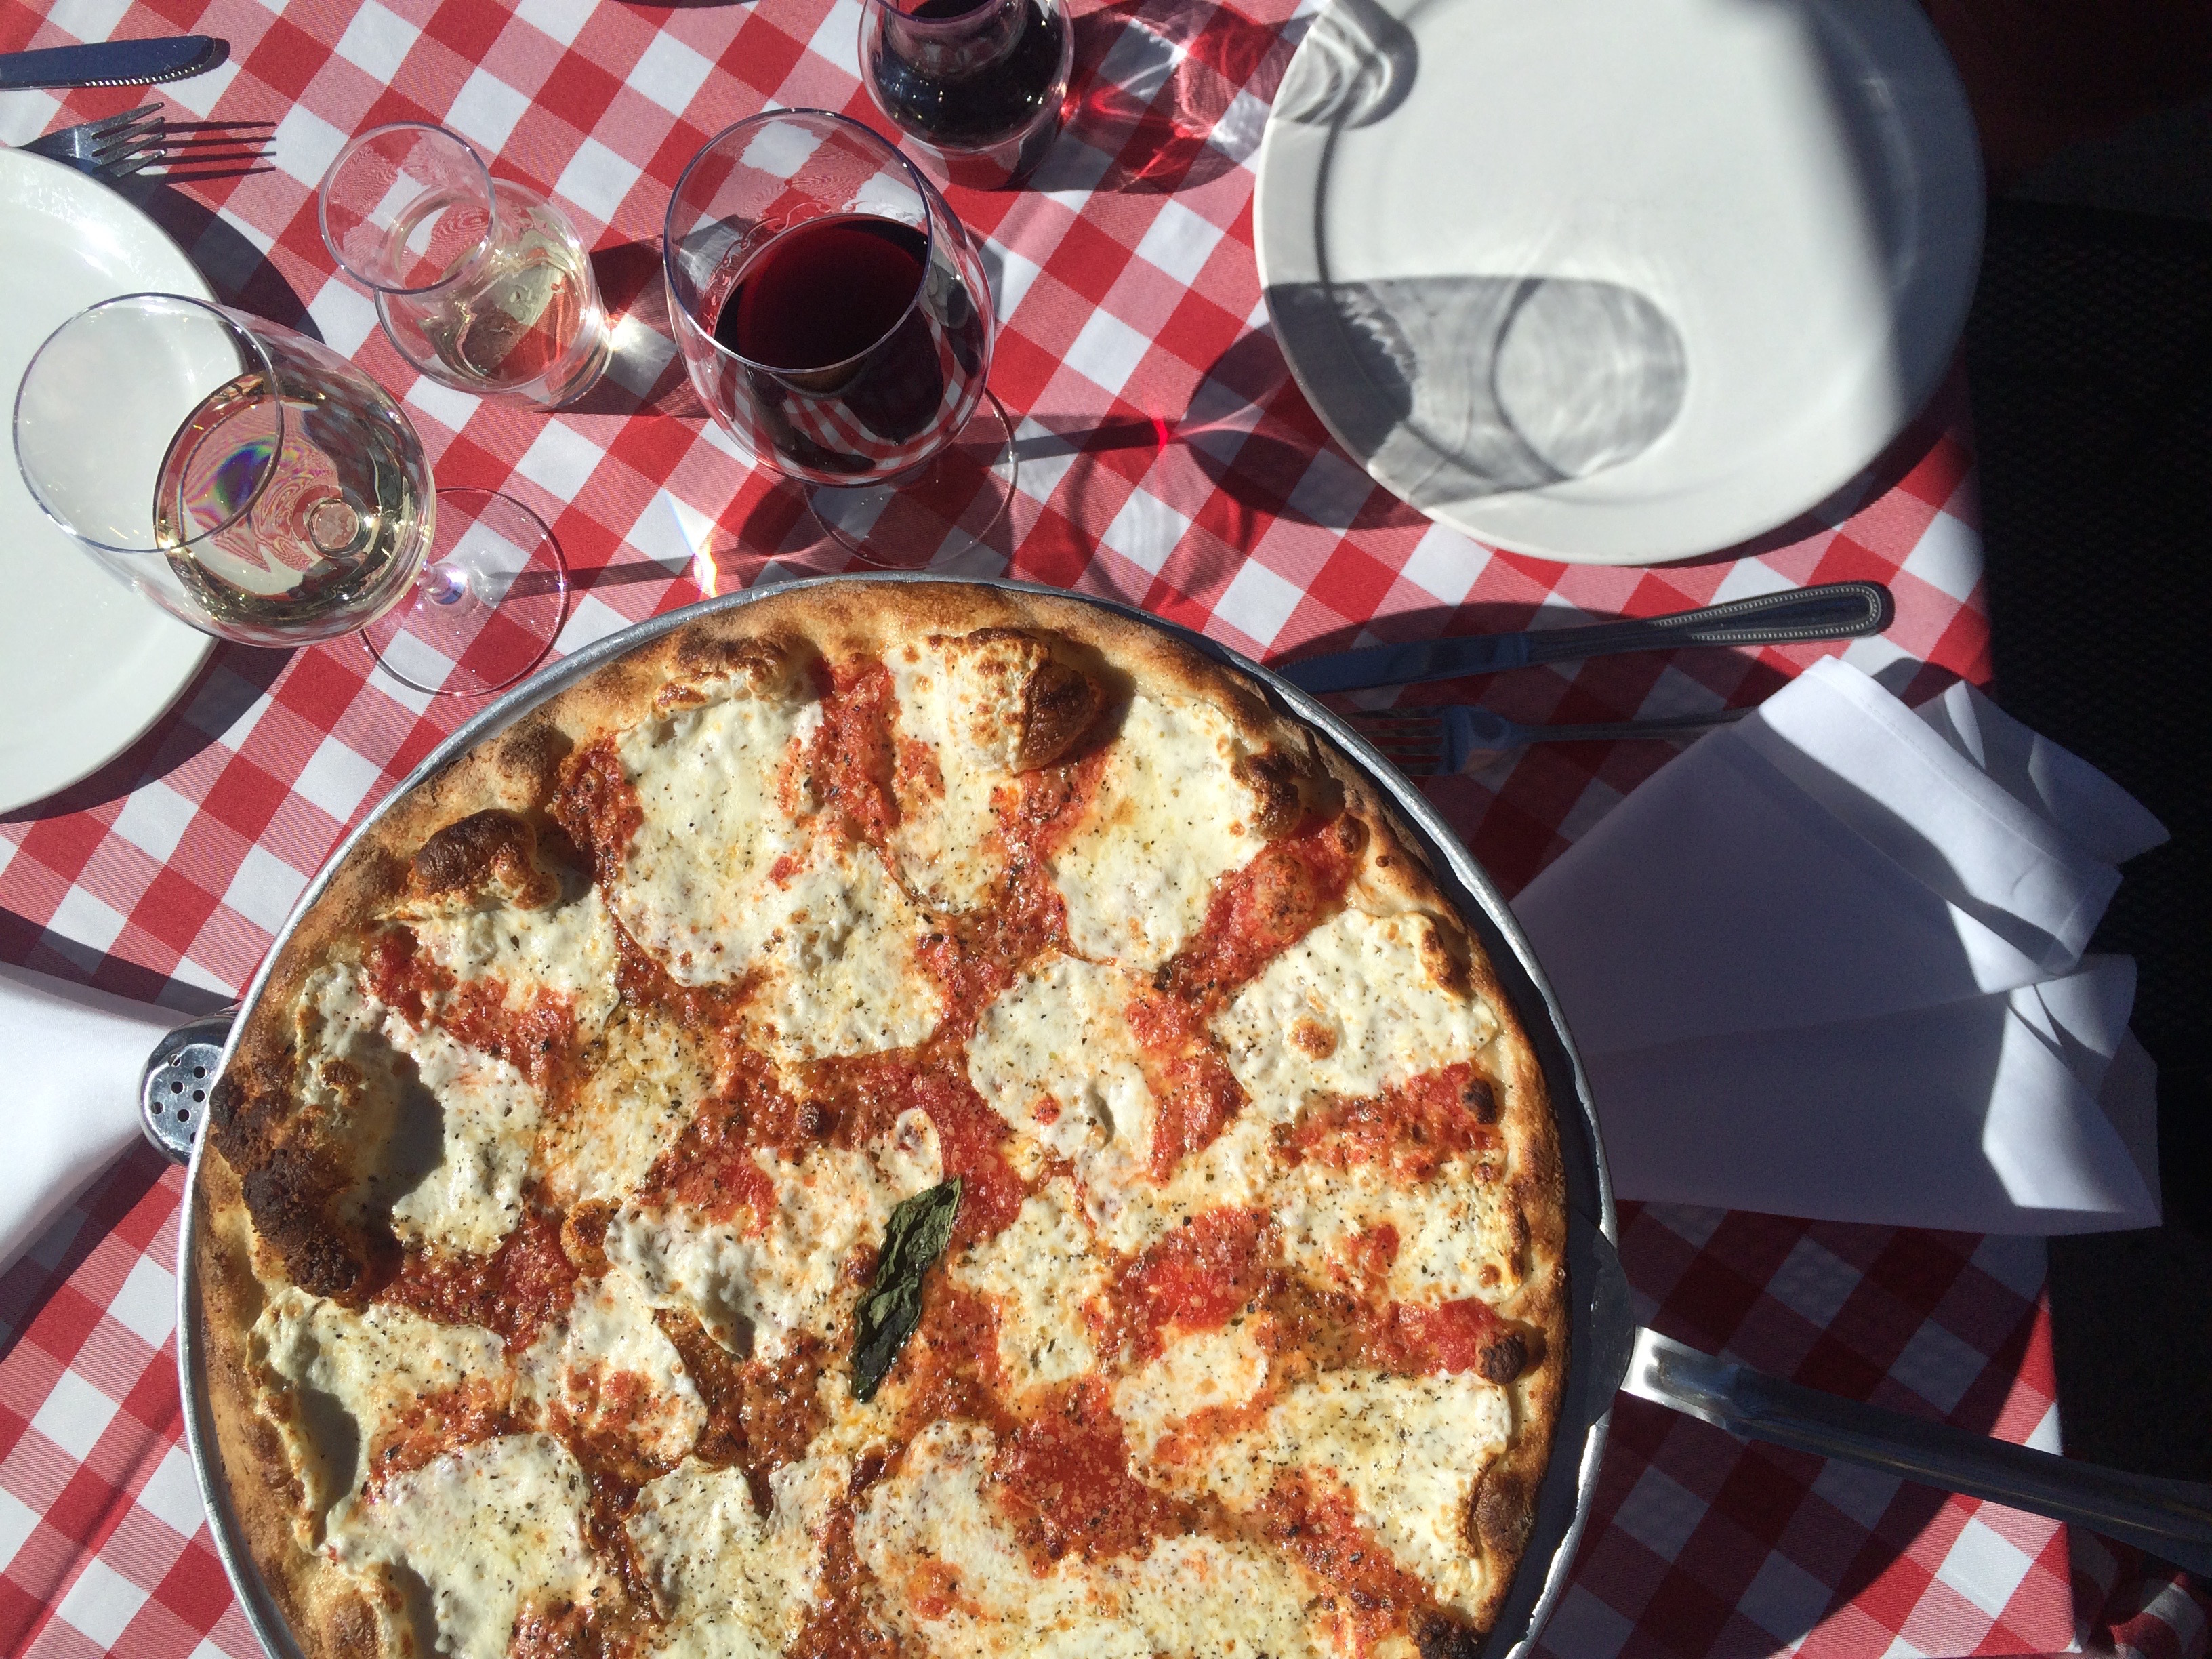 Grimaldi's Pizzeria in Dumbo Is Now Owned by an Arizona Chain